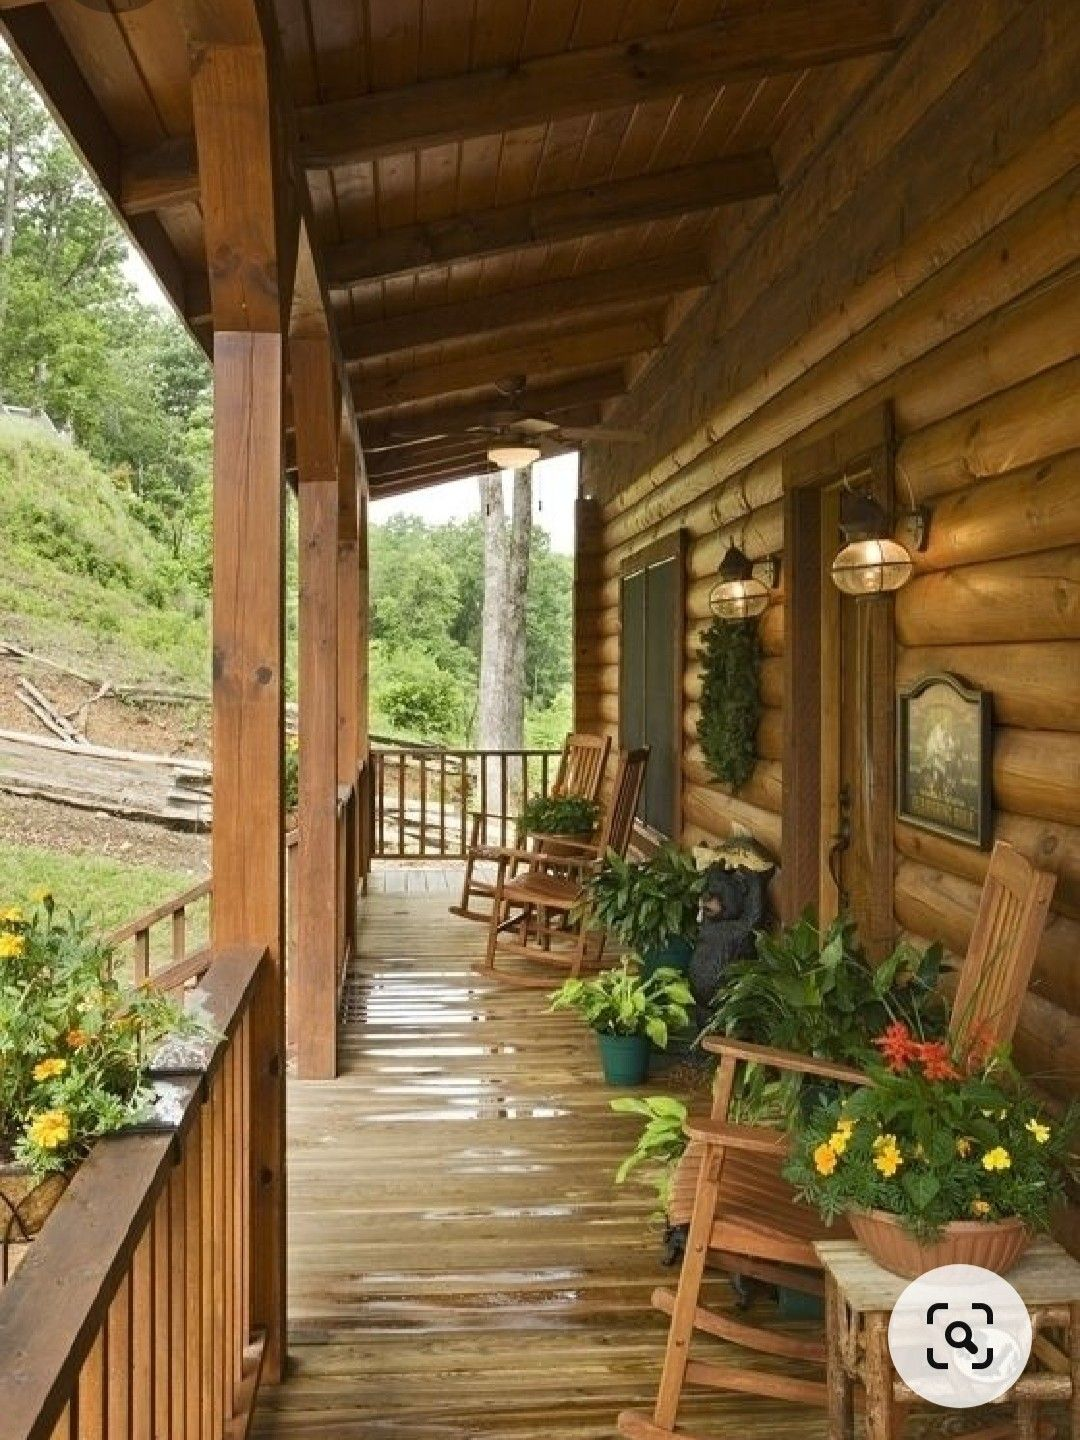 Pin By Marta Cioccari On Relax In 2020 Log Cabin Exterior Rustic Porch House With Porch